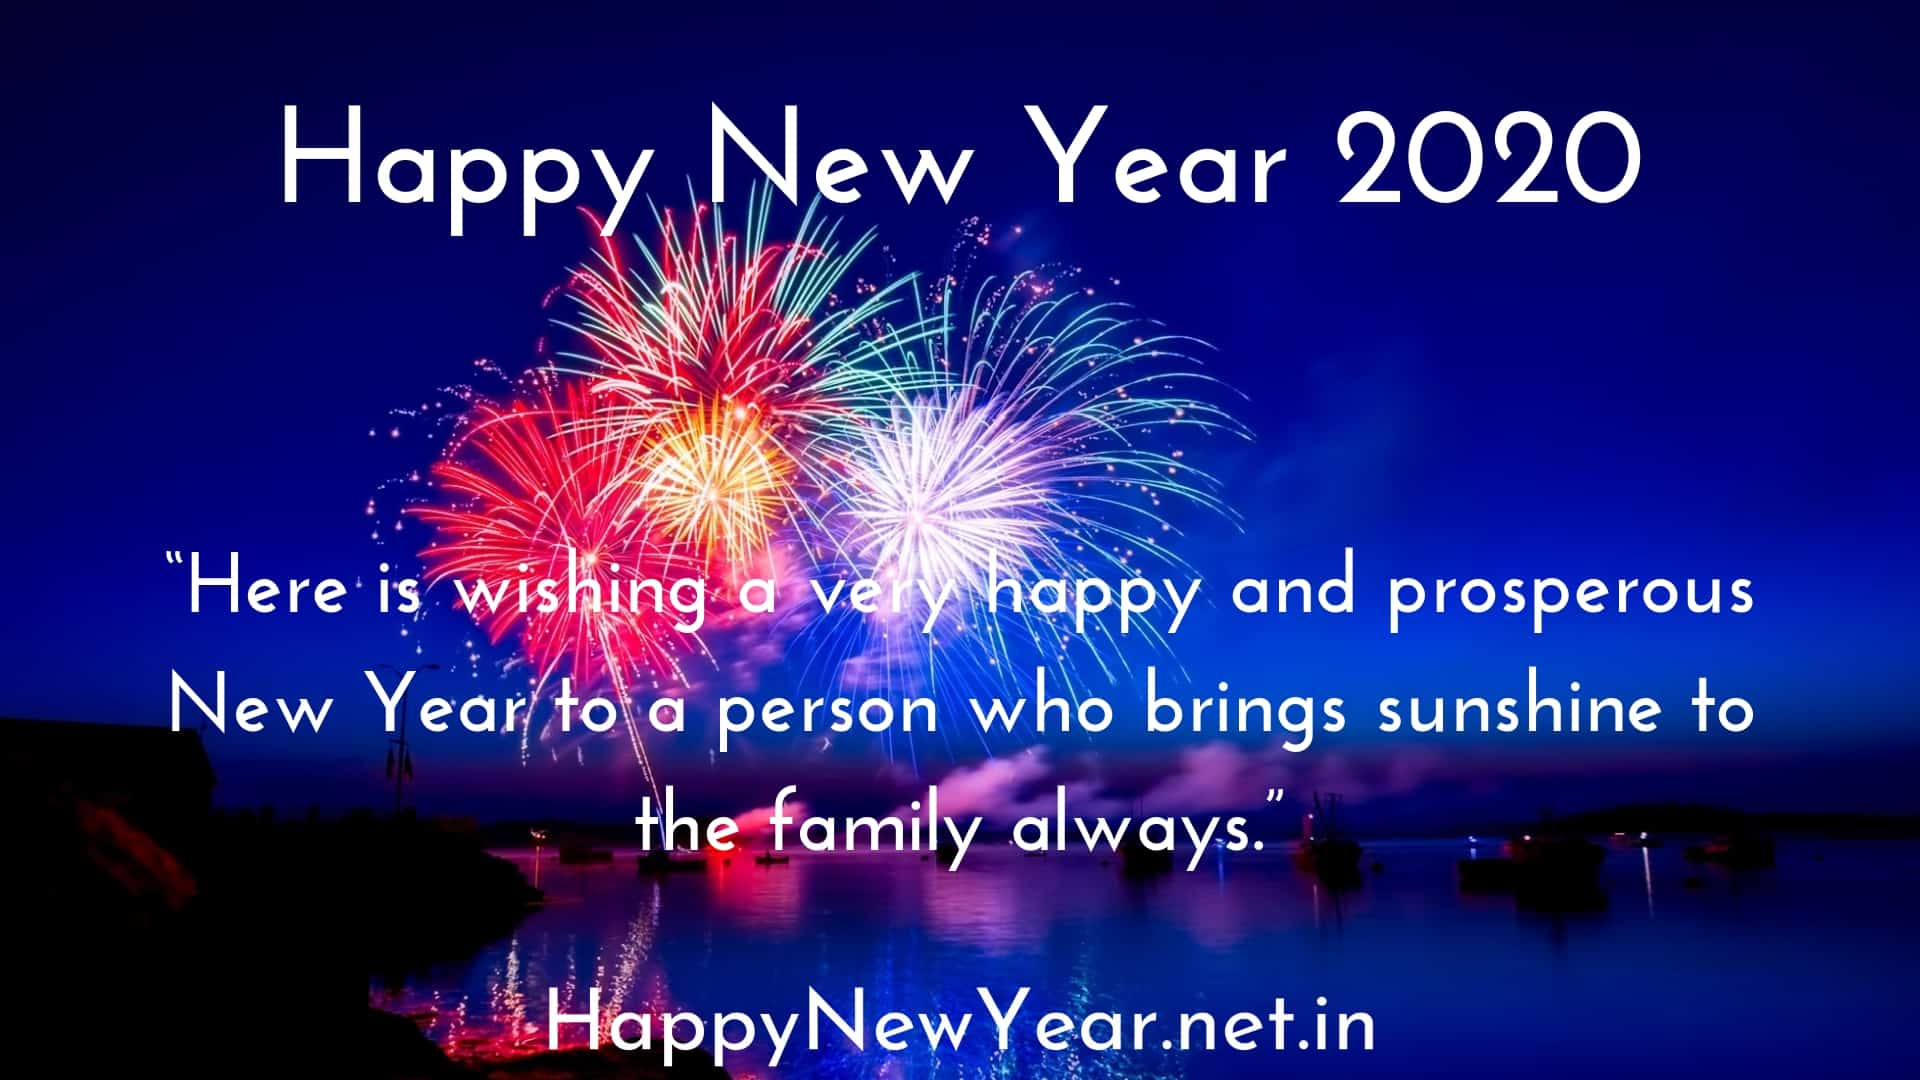 Happy New Year 2020 Images Free Download